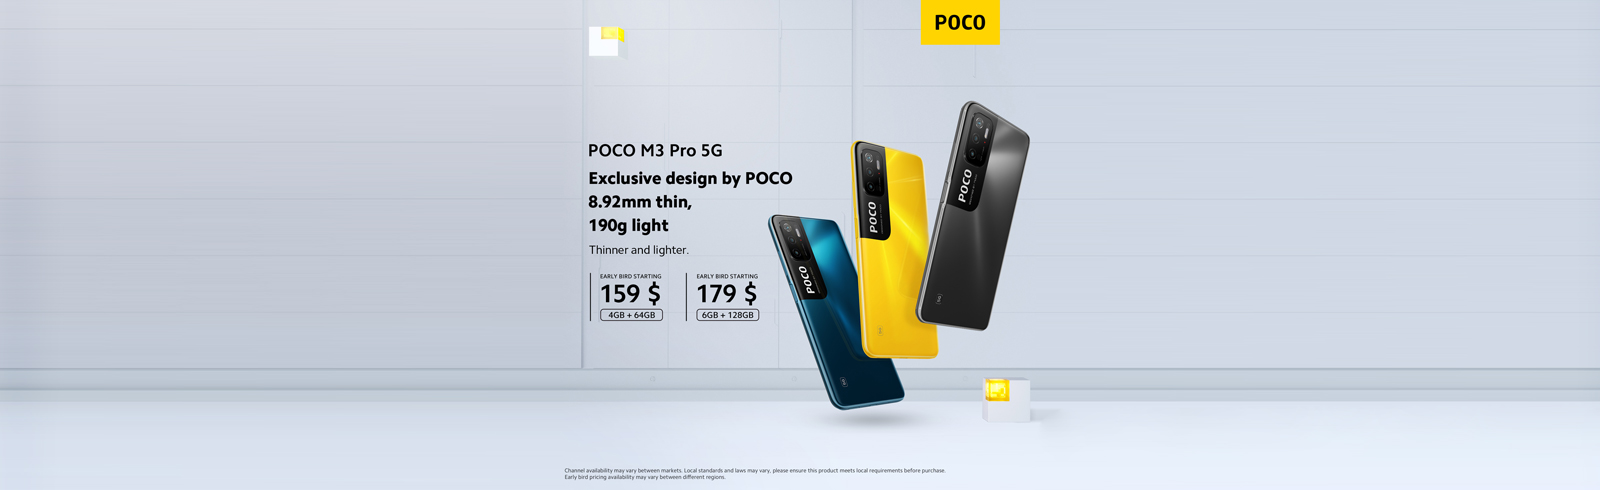 POCO M3 Pro - specifications, prices, coupon codes for discounts